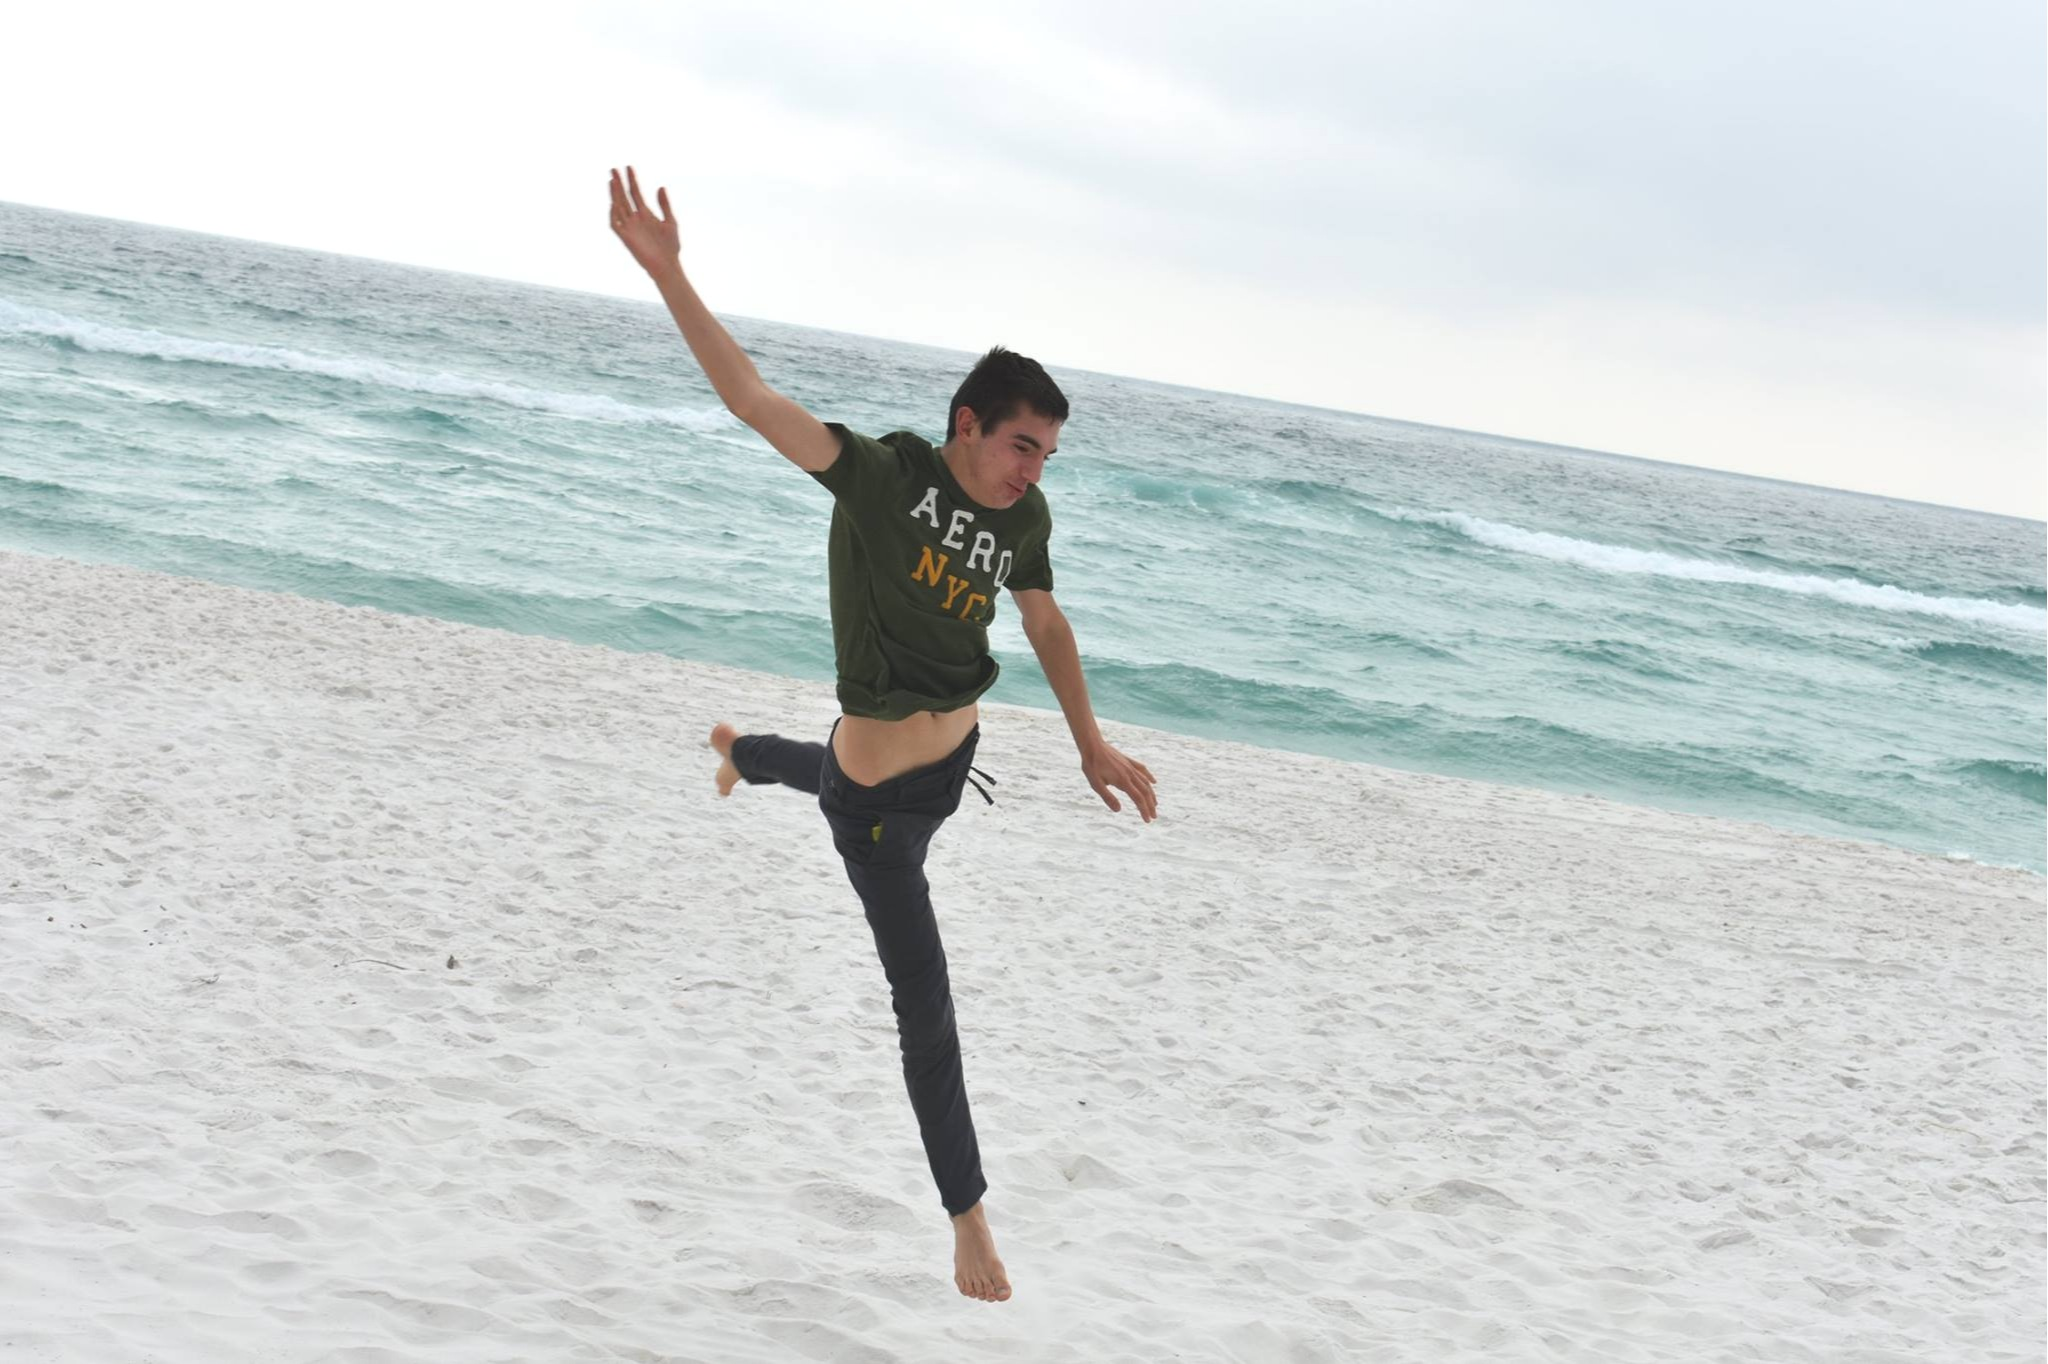 Abraham+leaping+for+joy+on+beach.jpg